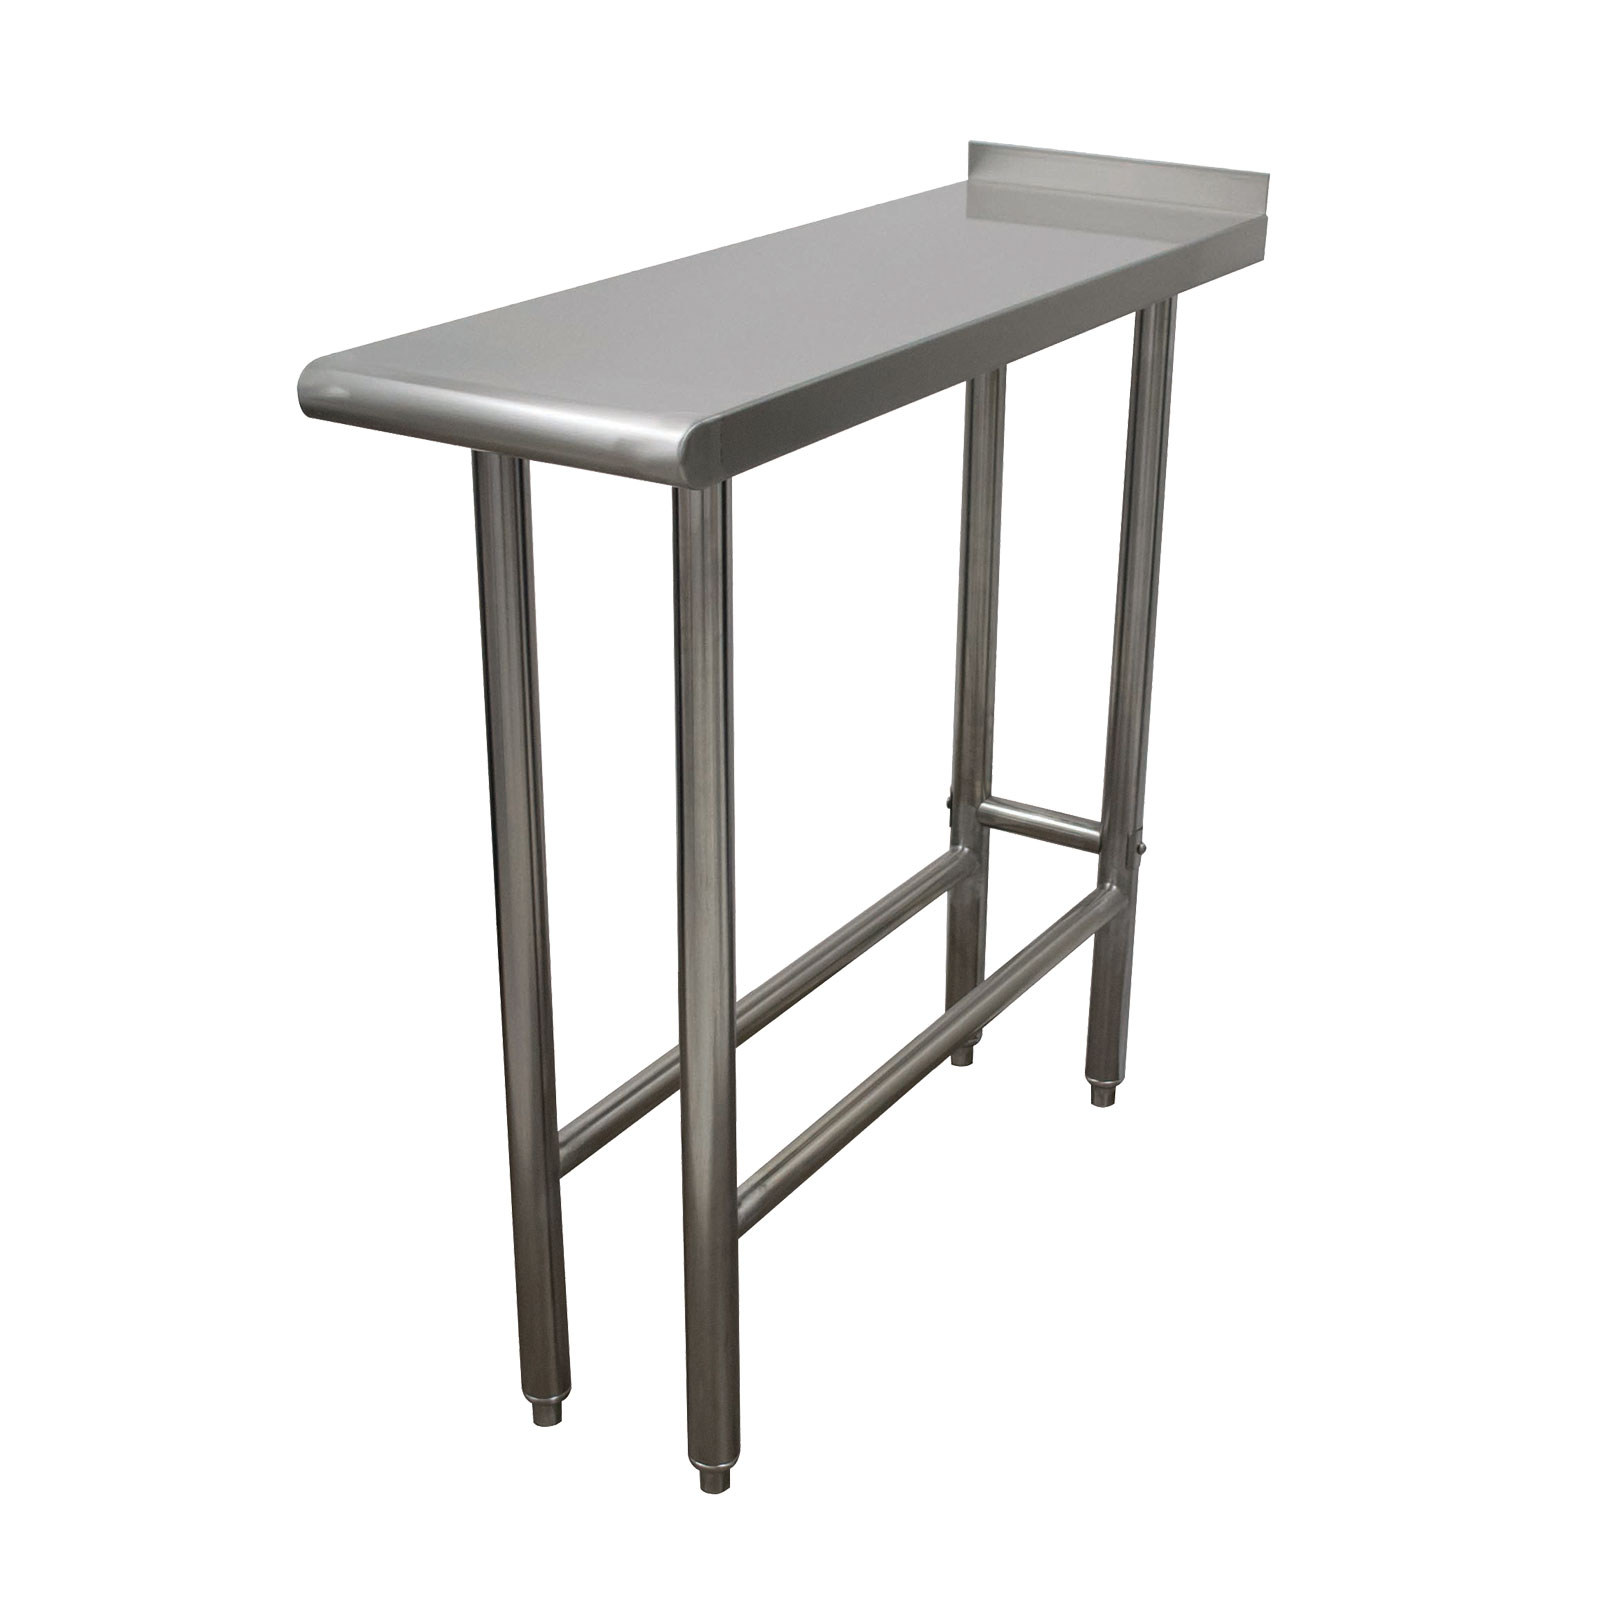 Advance Tabco TFMS-150 work table,  12